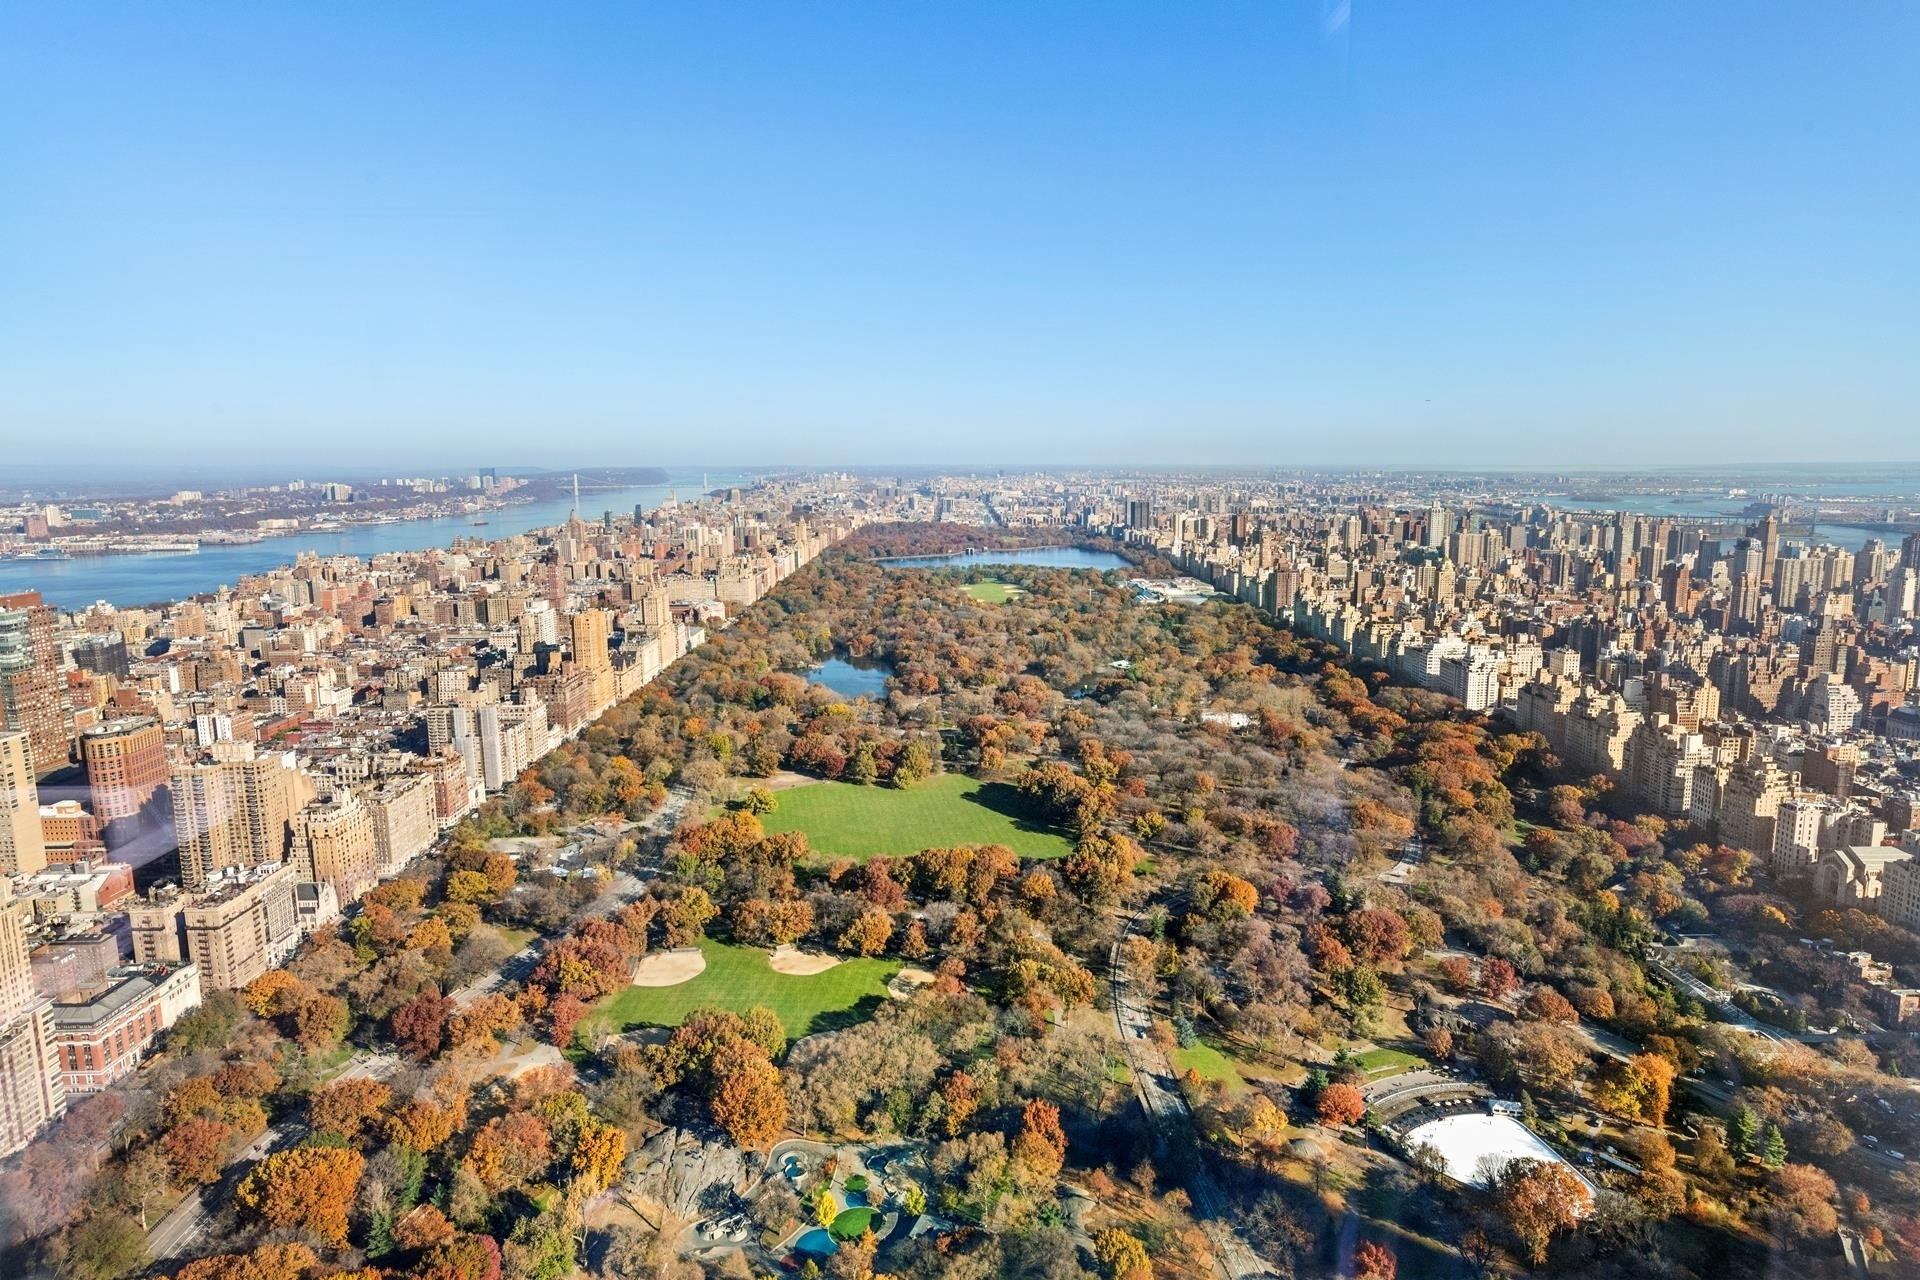 3. Condominiums for Sale at One57, 157 West 57th St, 87 Midtown West, New York, NY 10019